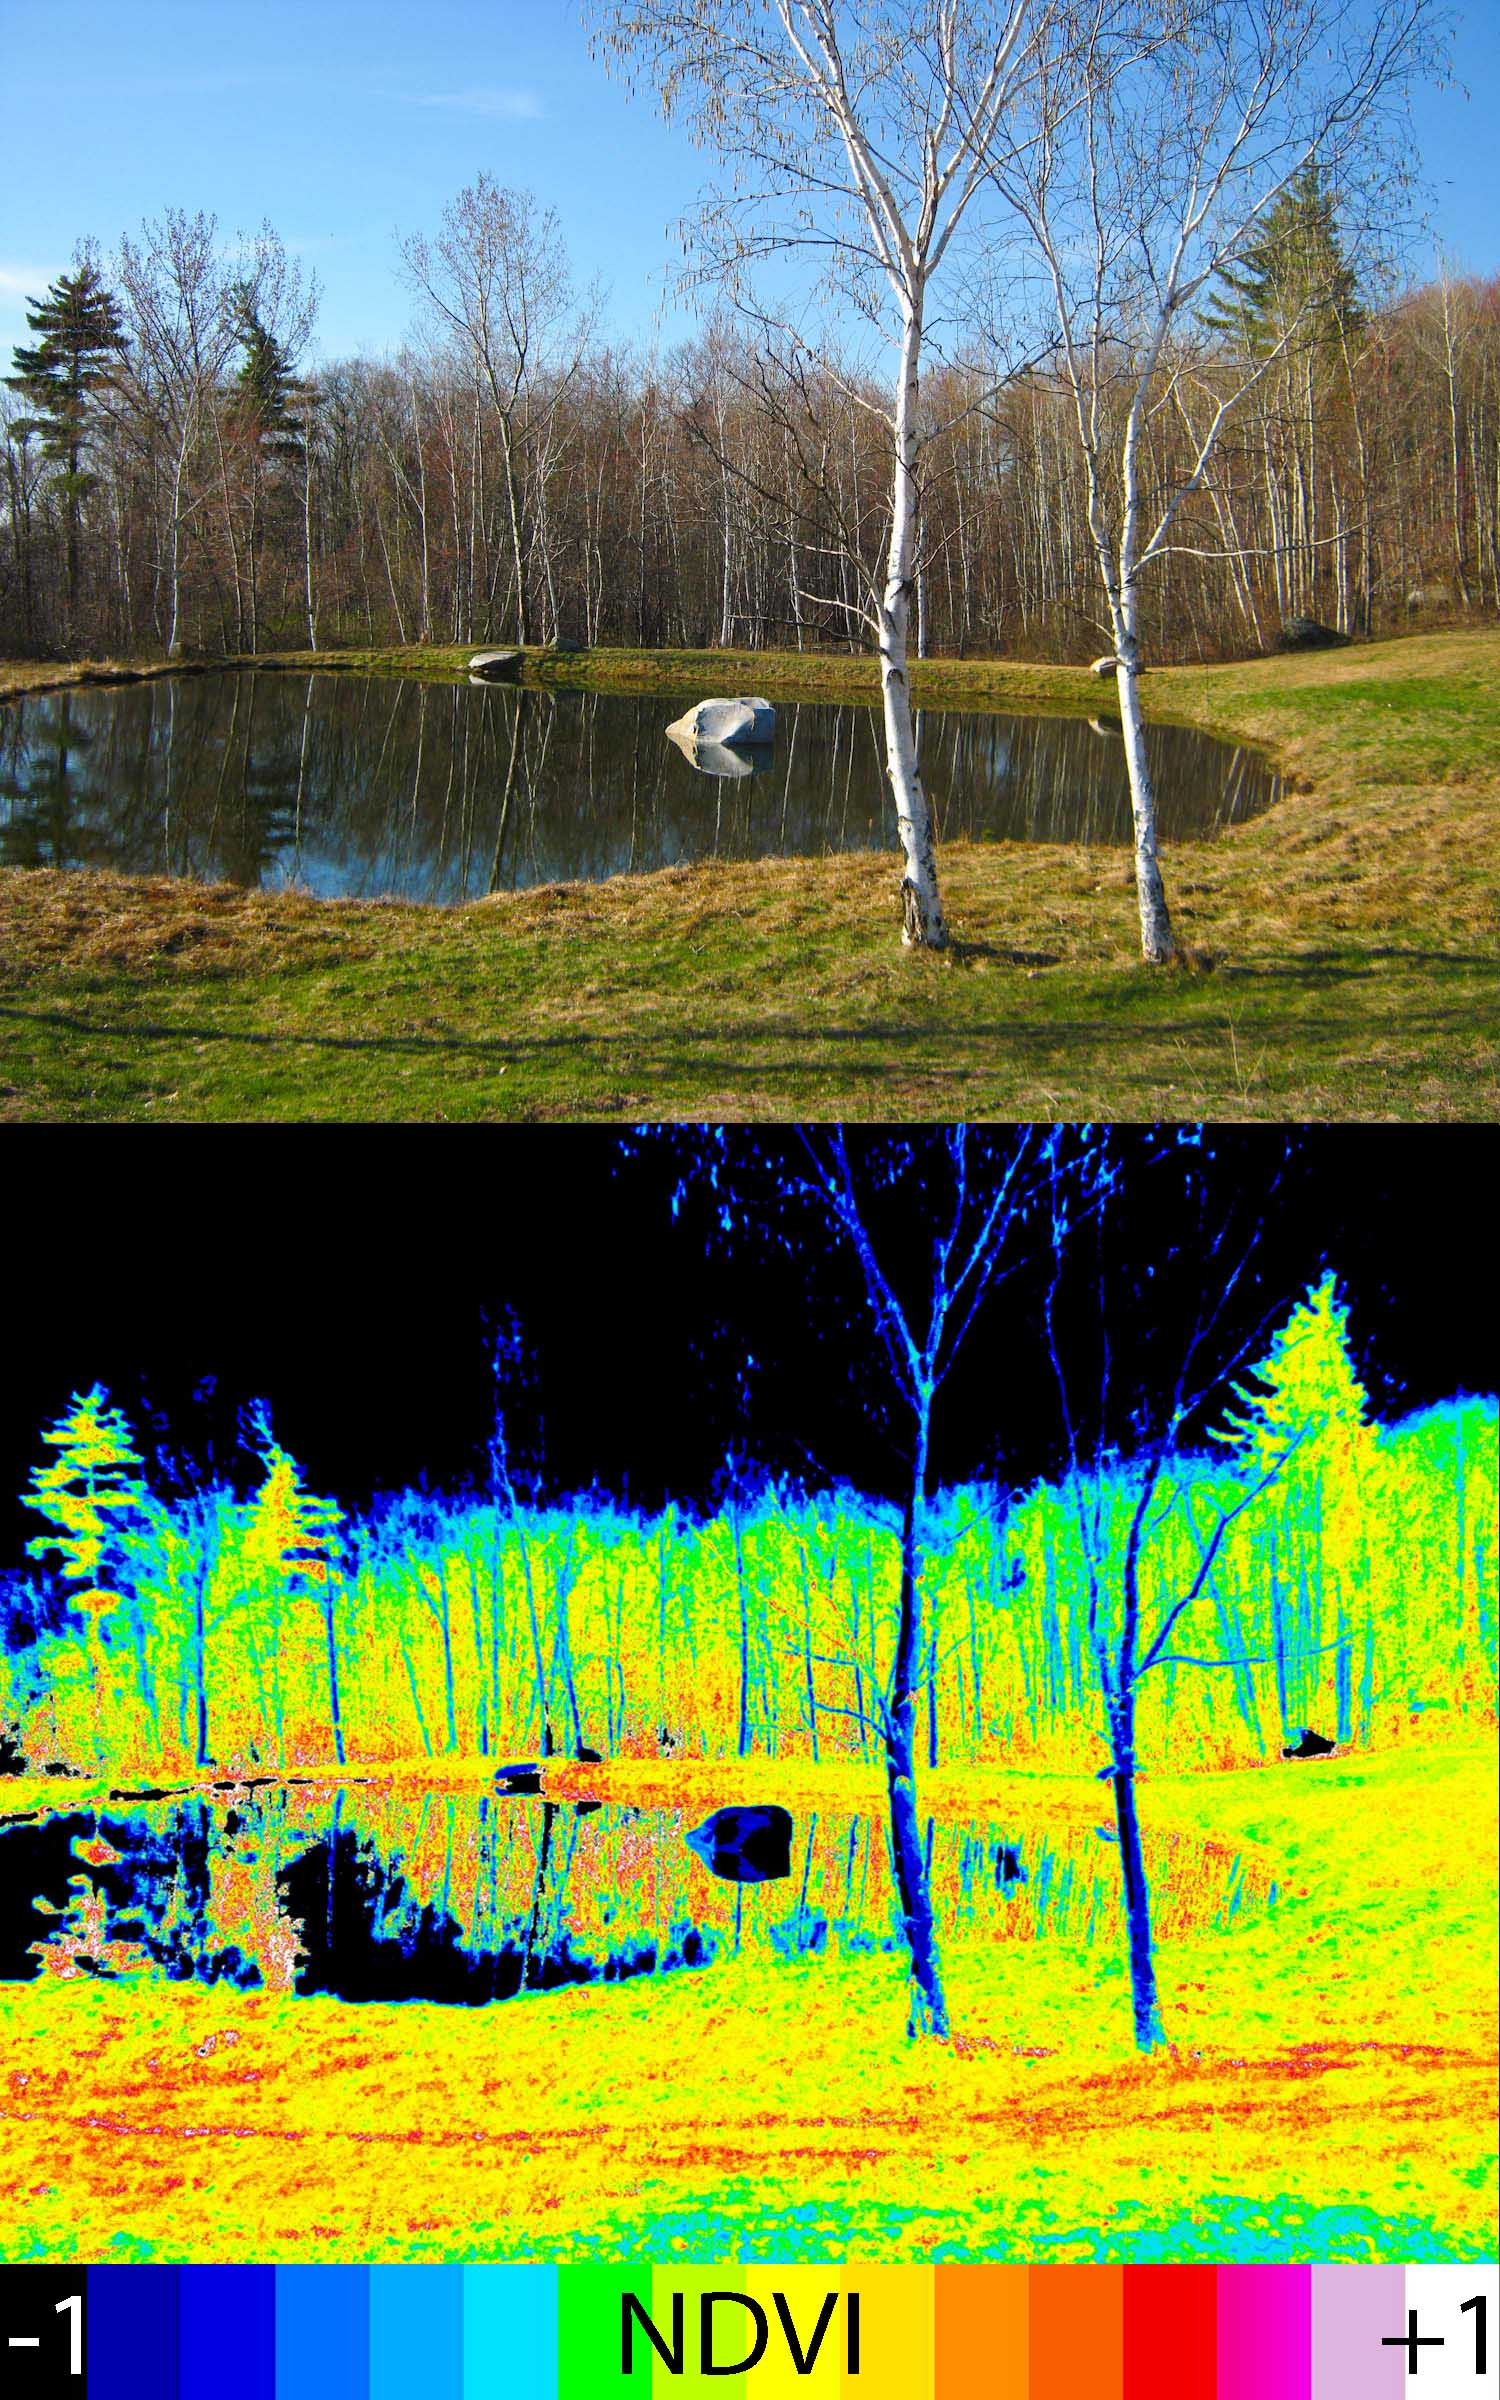 Photo: Normal color photo (top) and normalized difference vegetation index (NDVI) image. NDVI image was derived from two color channels in a single photo taken with a camera modified with a special infrared filter. Note that tree trunks, brown grass, and rocks have very low NDVI values because they are not photosynthetic. Healthy plants typically have NDVI values between 0.1 and 0.9.